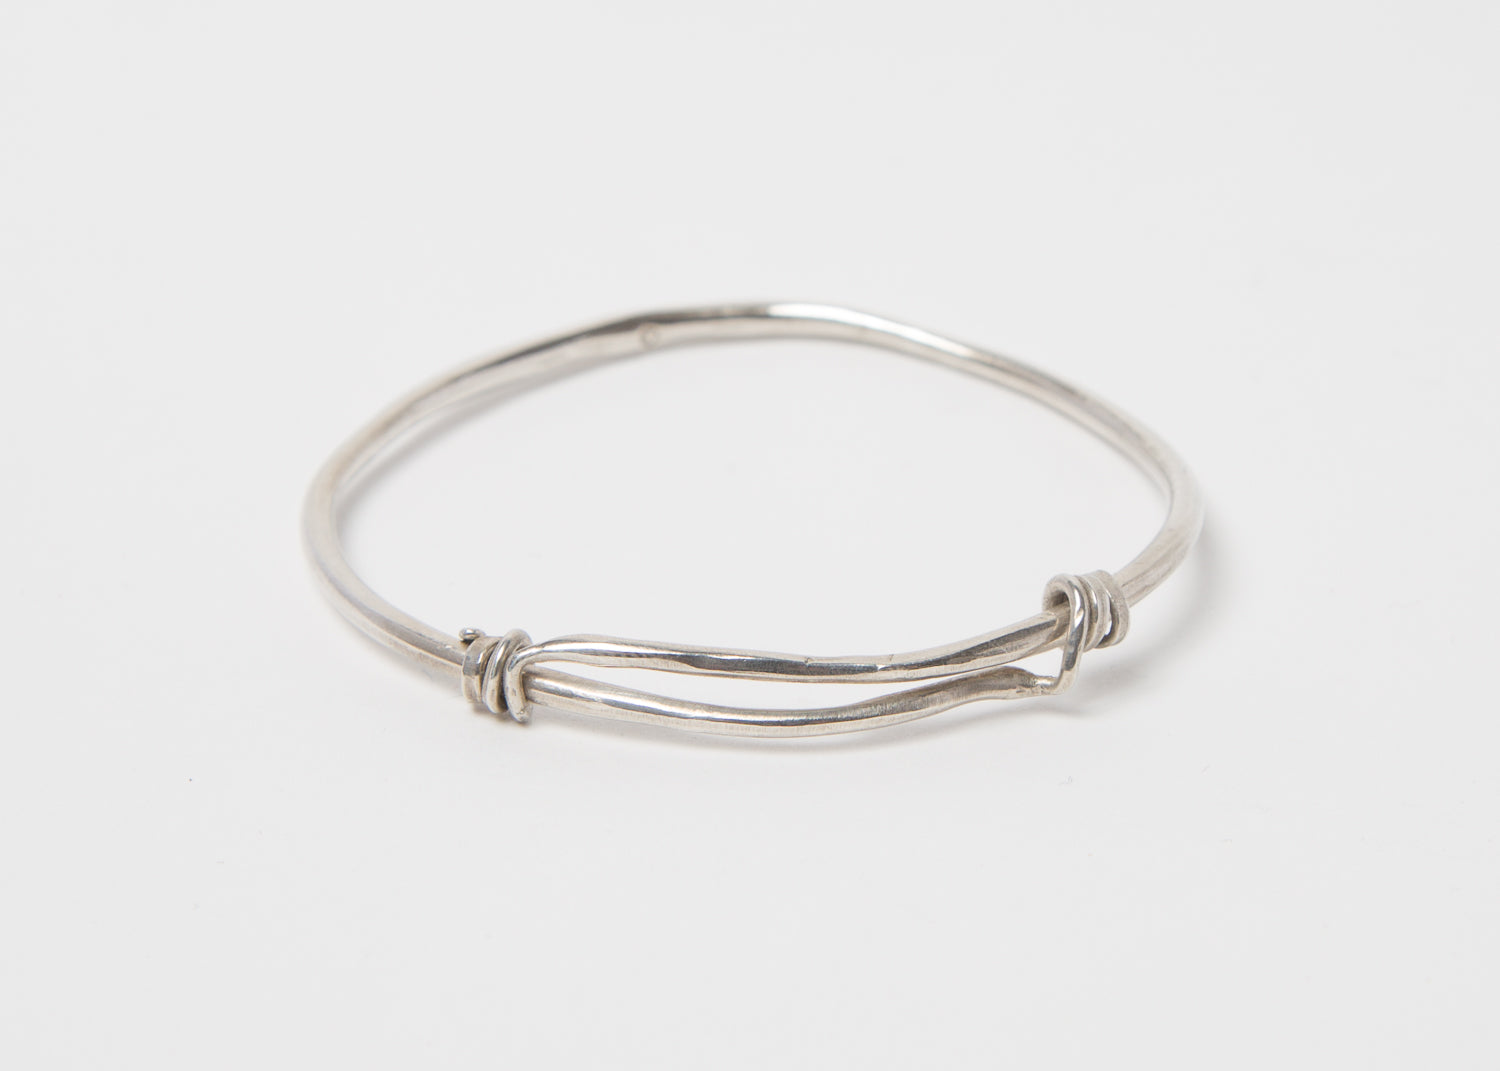 Ariana Boussard-Reifel Beverley Bangle Sterling Silver